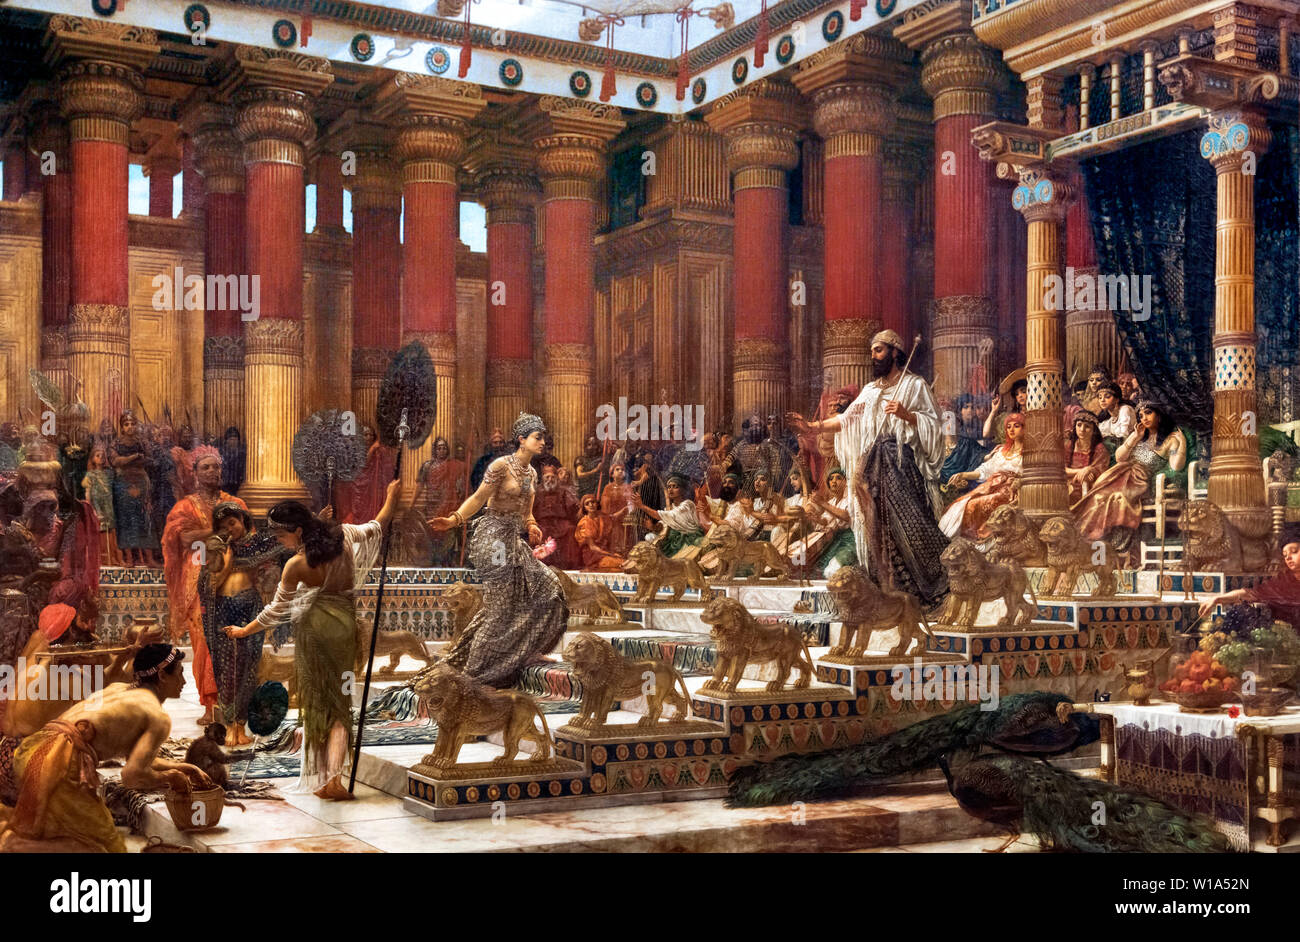 """King Solomon and the Queen of Sheba. """"The Visit of the Queen of Sheba to King Solomon"""" by Sir Edward John Poynter (1836-1919), oil on canvas, 1881-90 - Stock Image"""